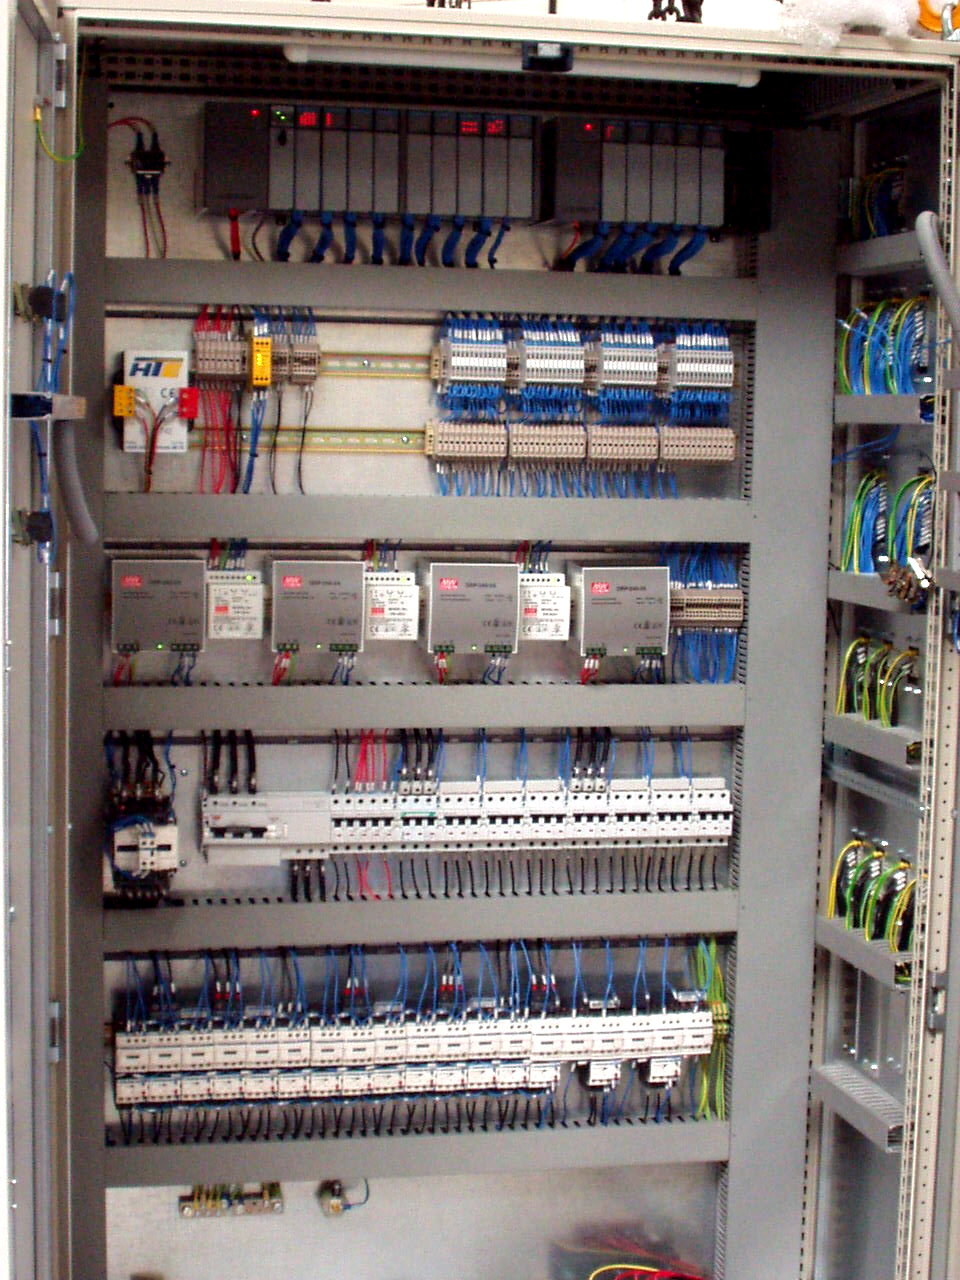 Merlin Control Systems - Bespoke electrical panel design, build and ...